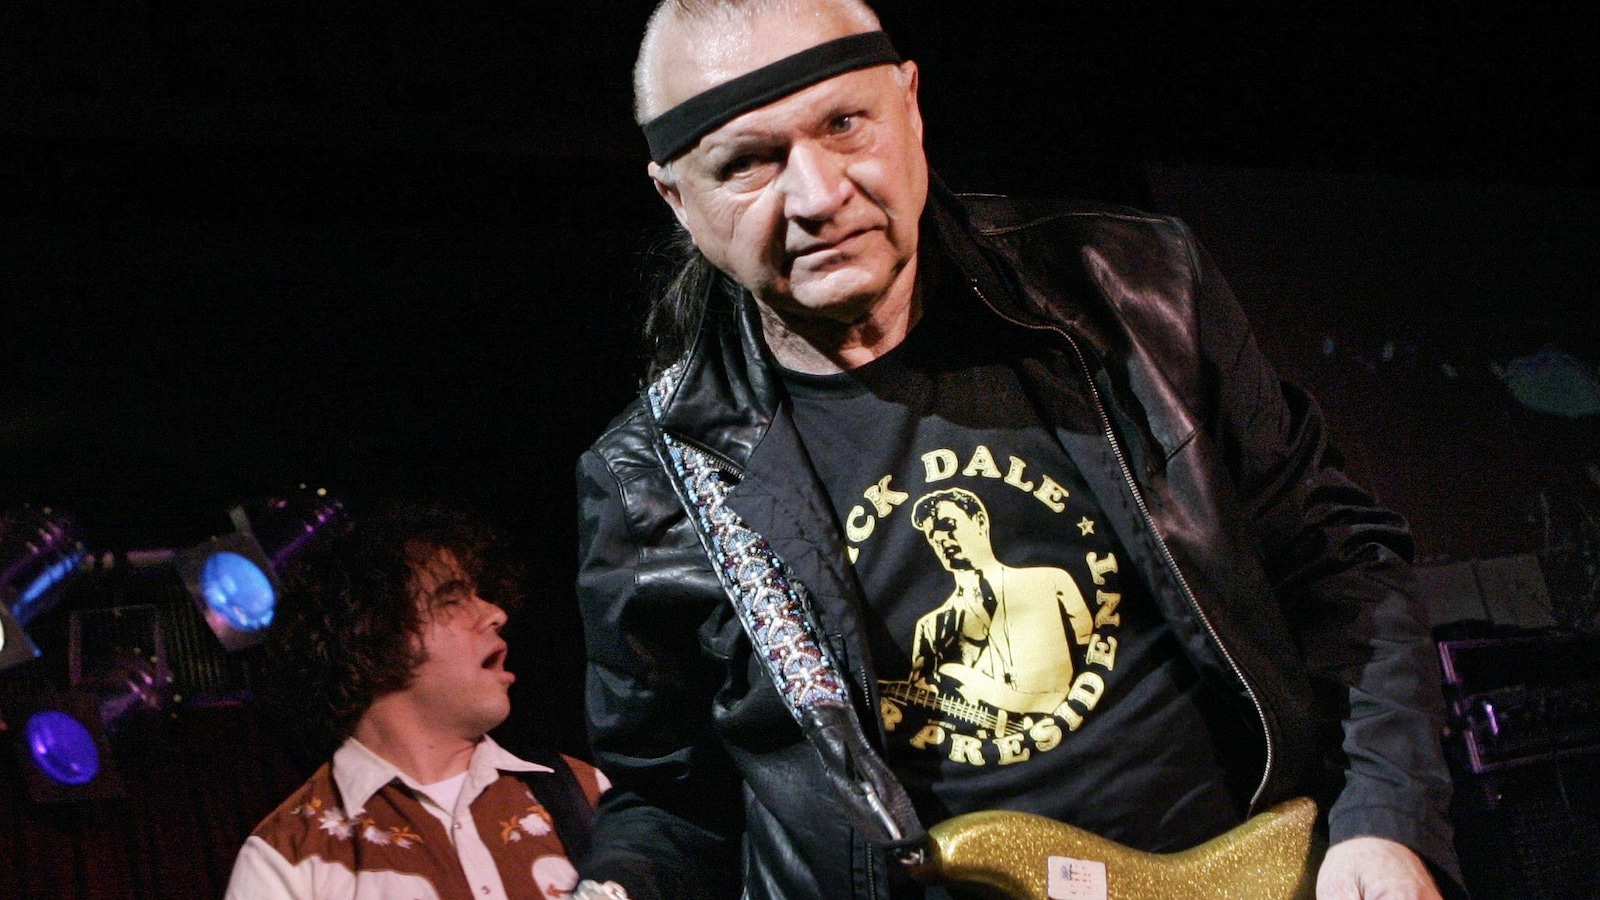 https://images.radio-canada.ca/q_auto,w_1600/v1/ici-info/16x9/dick-dale.jpg